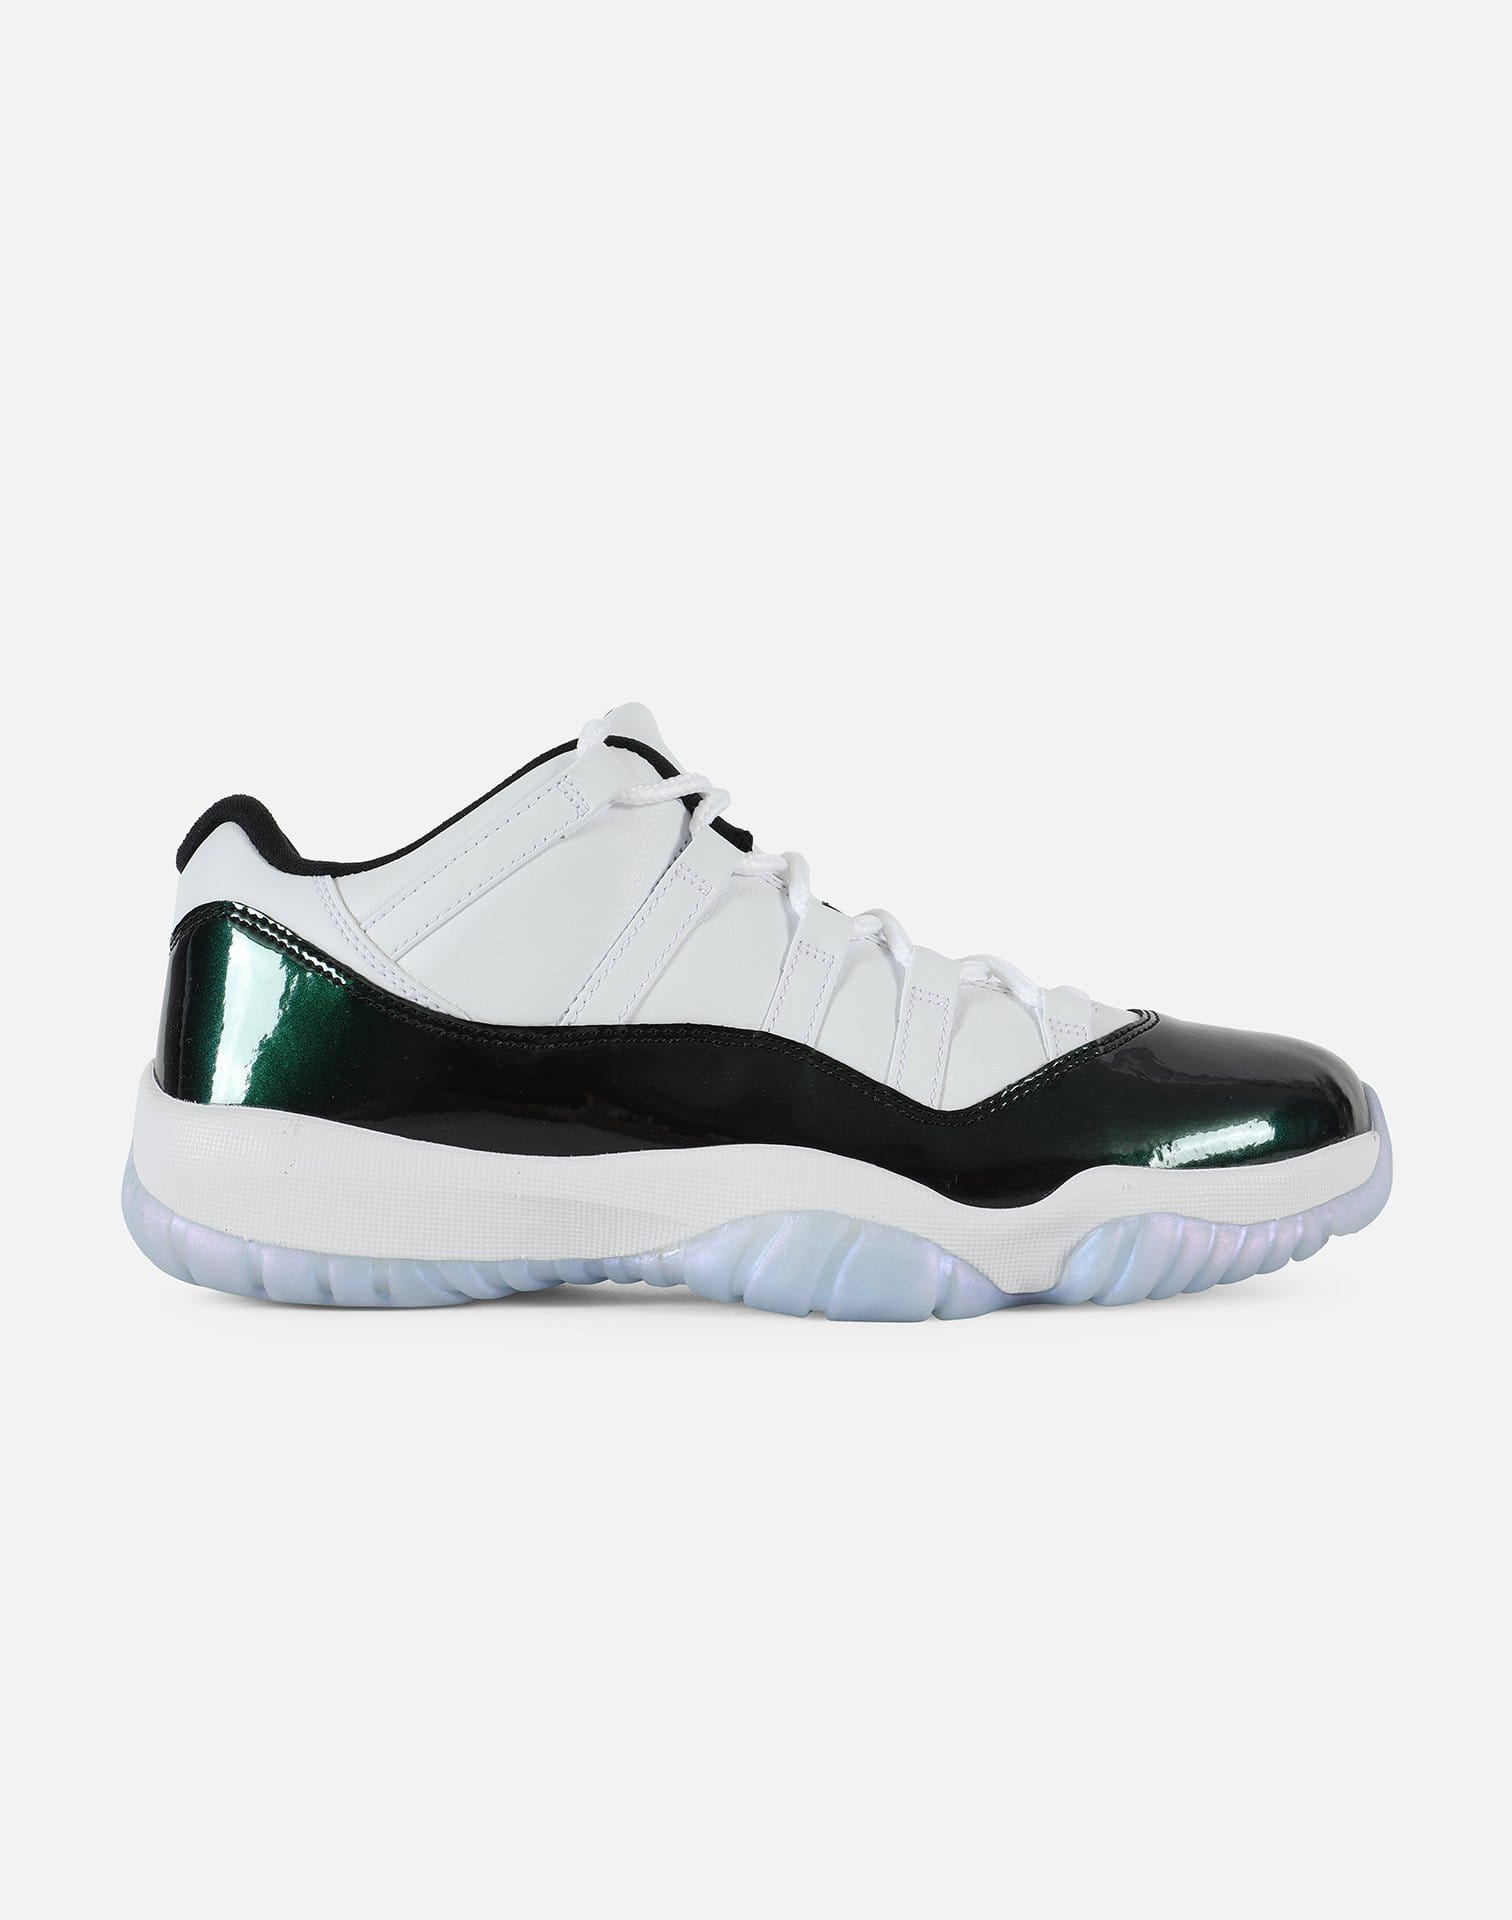 Jordan Air Jordan Retro 11 Low 'Iridescent'